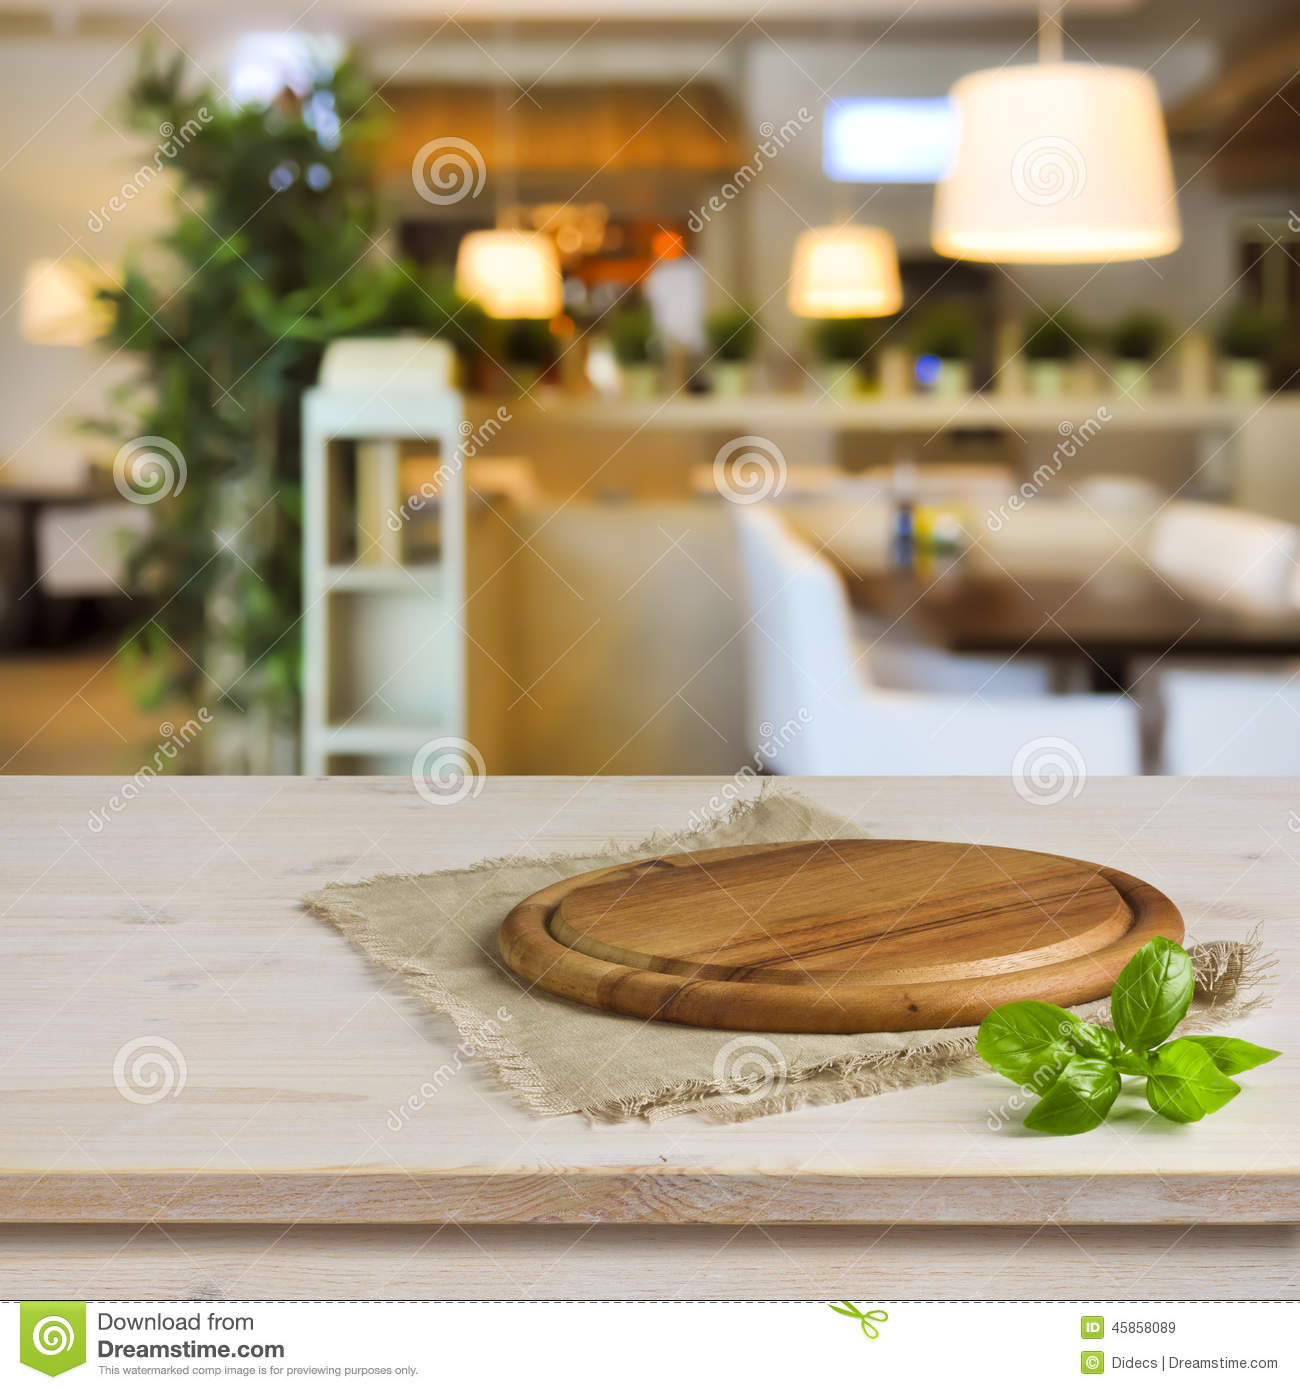 stock photo kitchen table round board over green bokeh background image kitchen table restaurant Cutting board on table over blurred restaurant interior background Royalty Free Stock Images